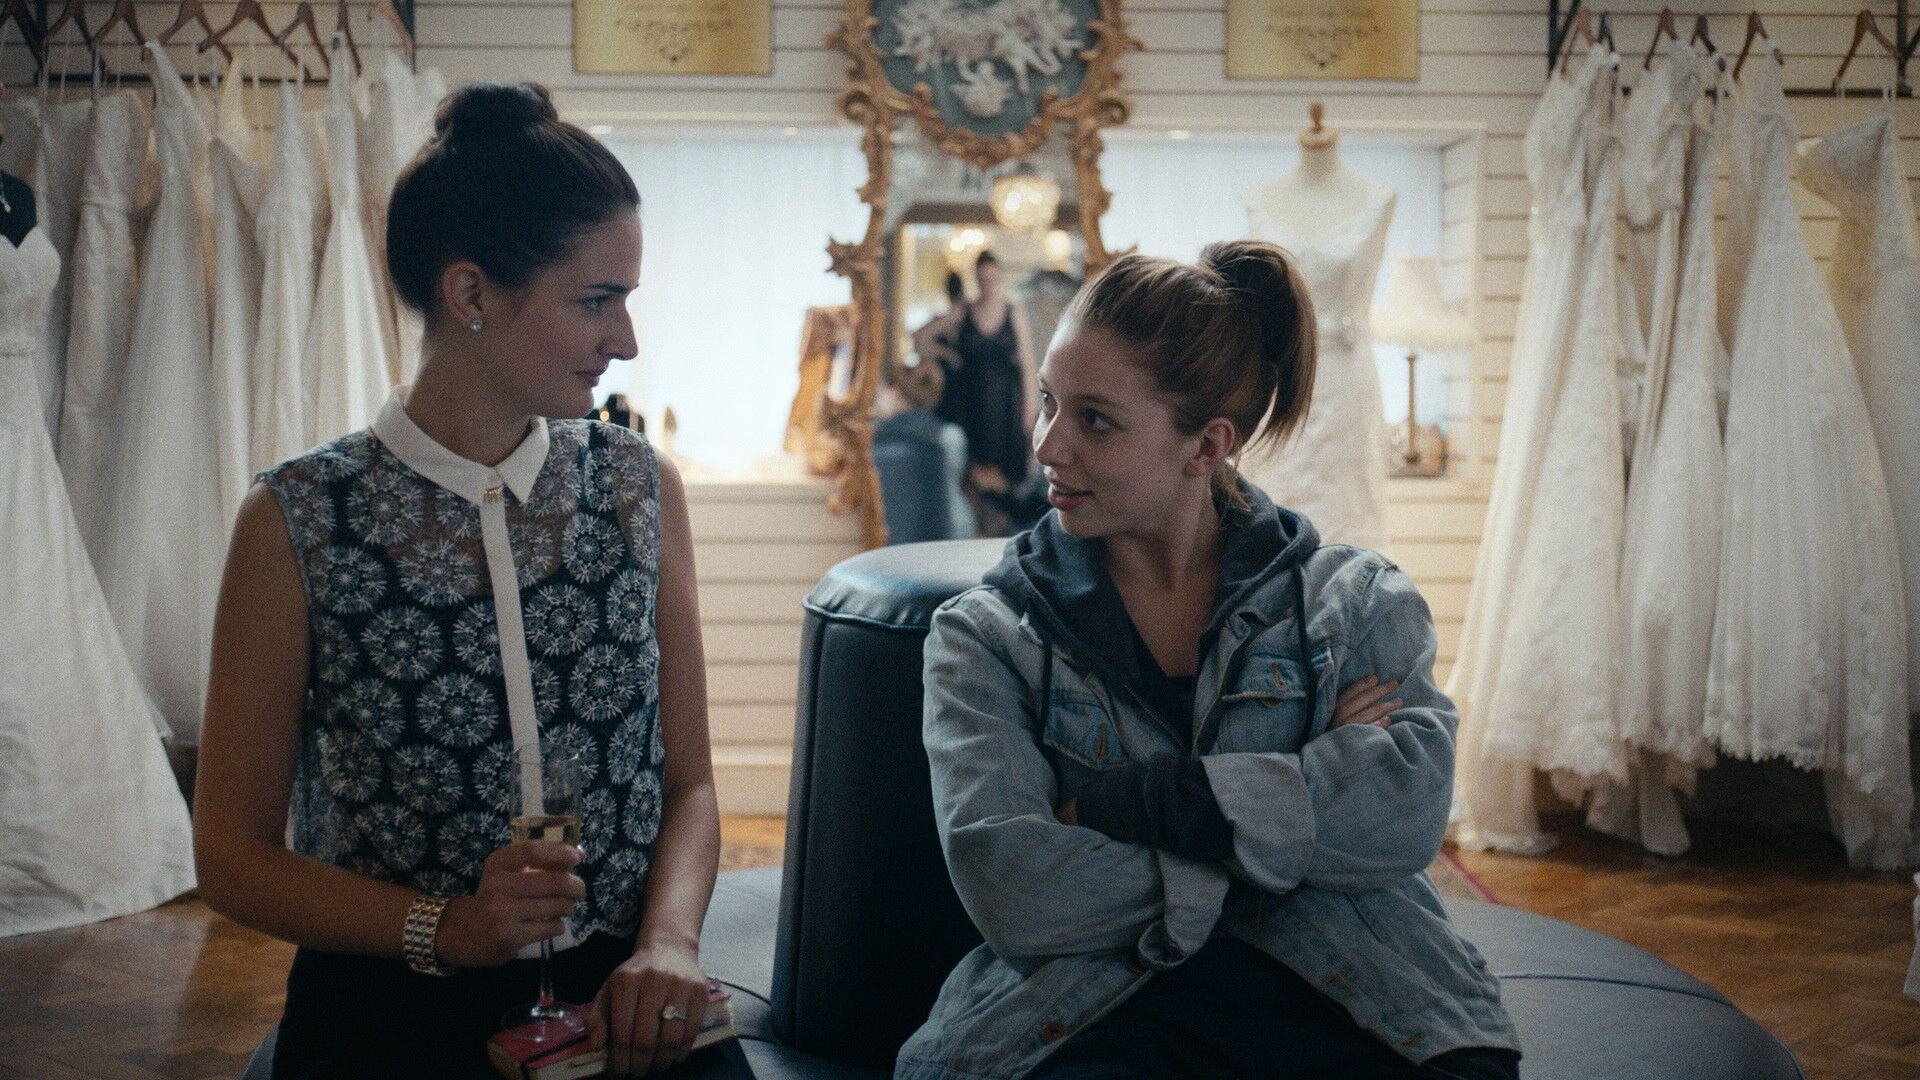 Seána Kerslake (right) in A DATE FOR MAD MARY photo courtesy of SFFILM